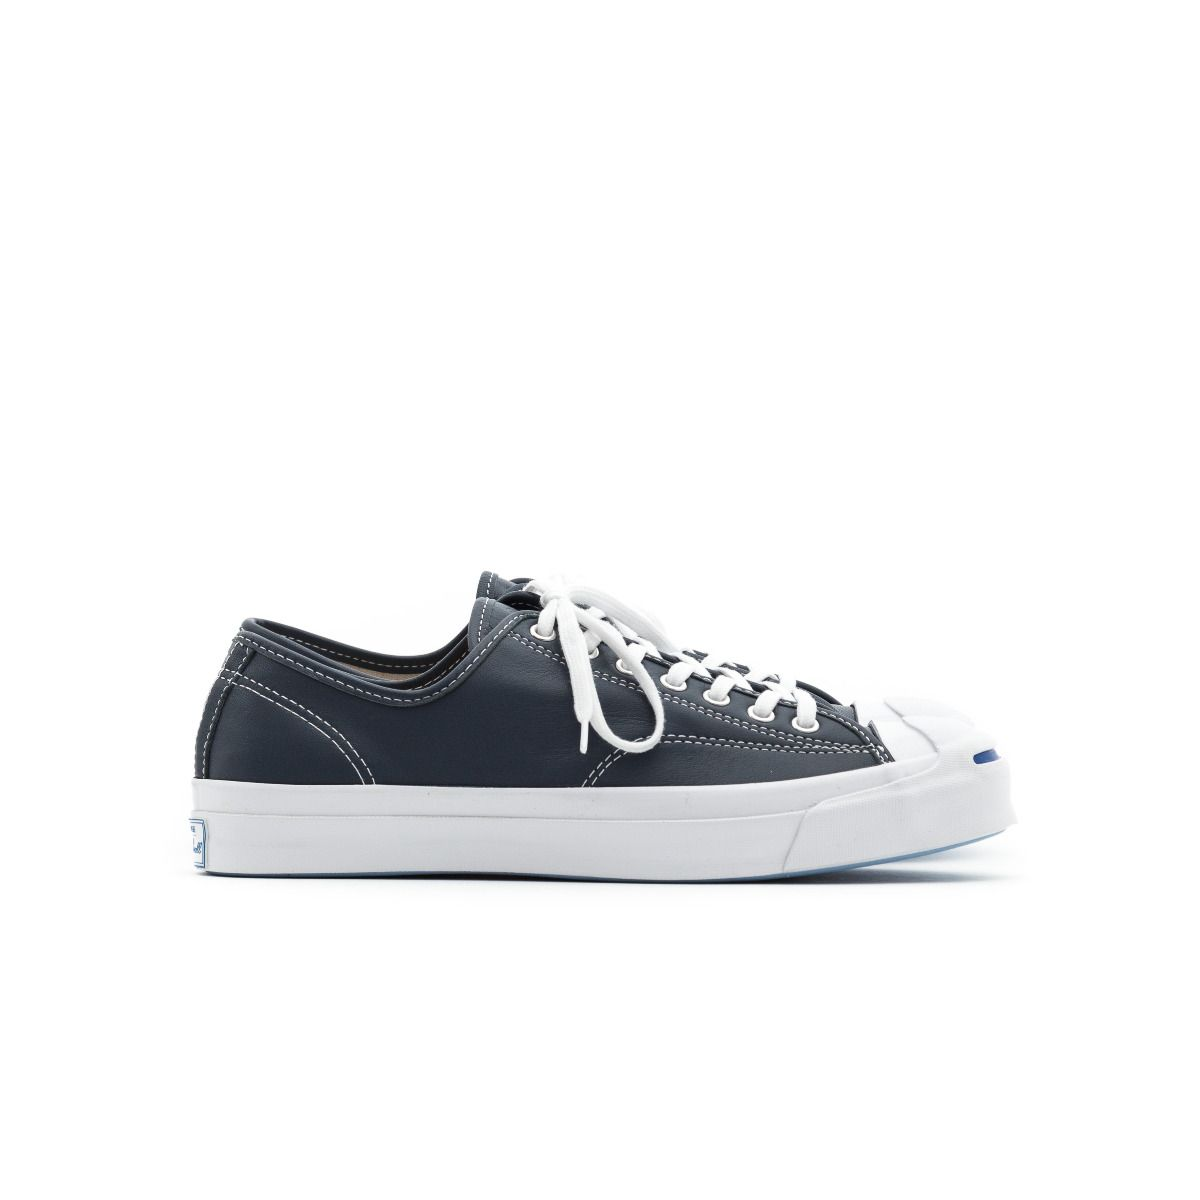 1393dd18429e Converse Jack Purcell Signature Leather Shark Navy 155586C ...